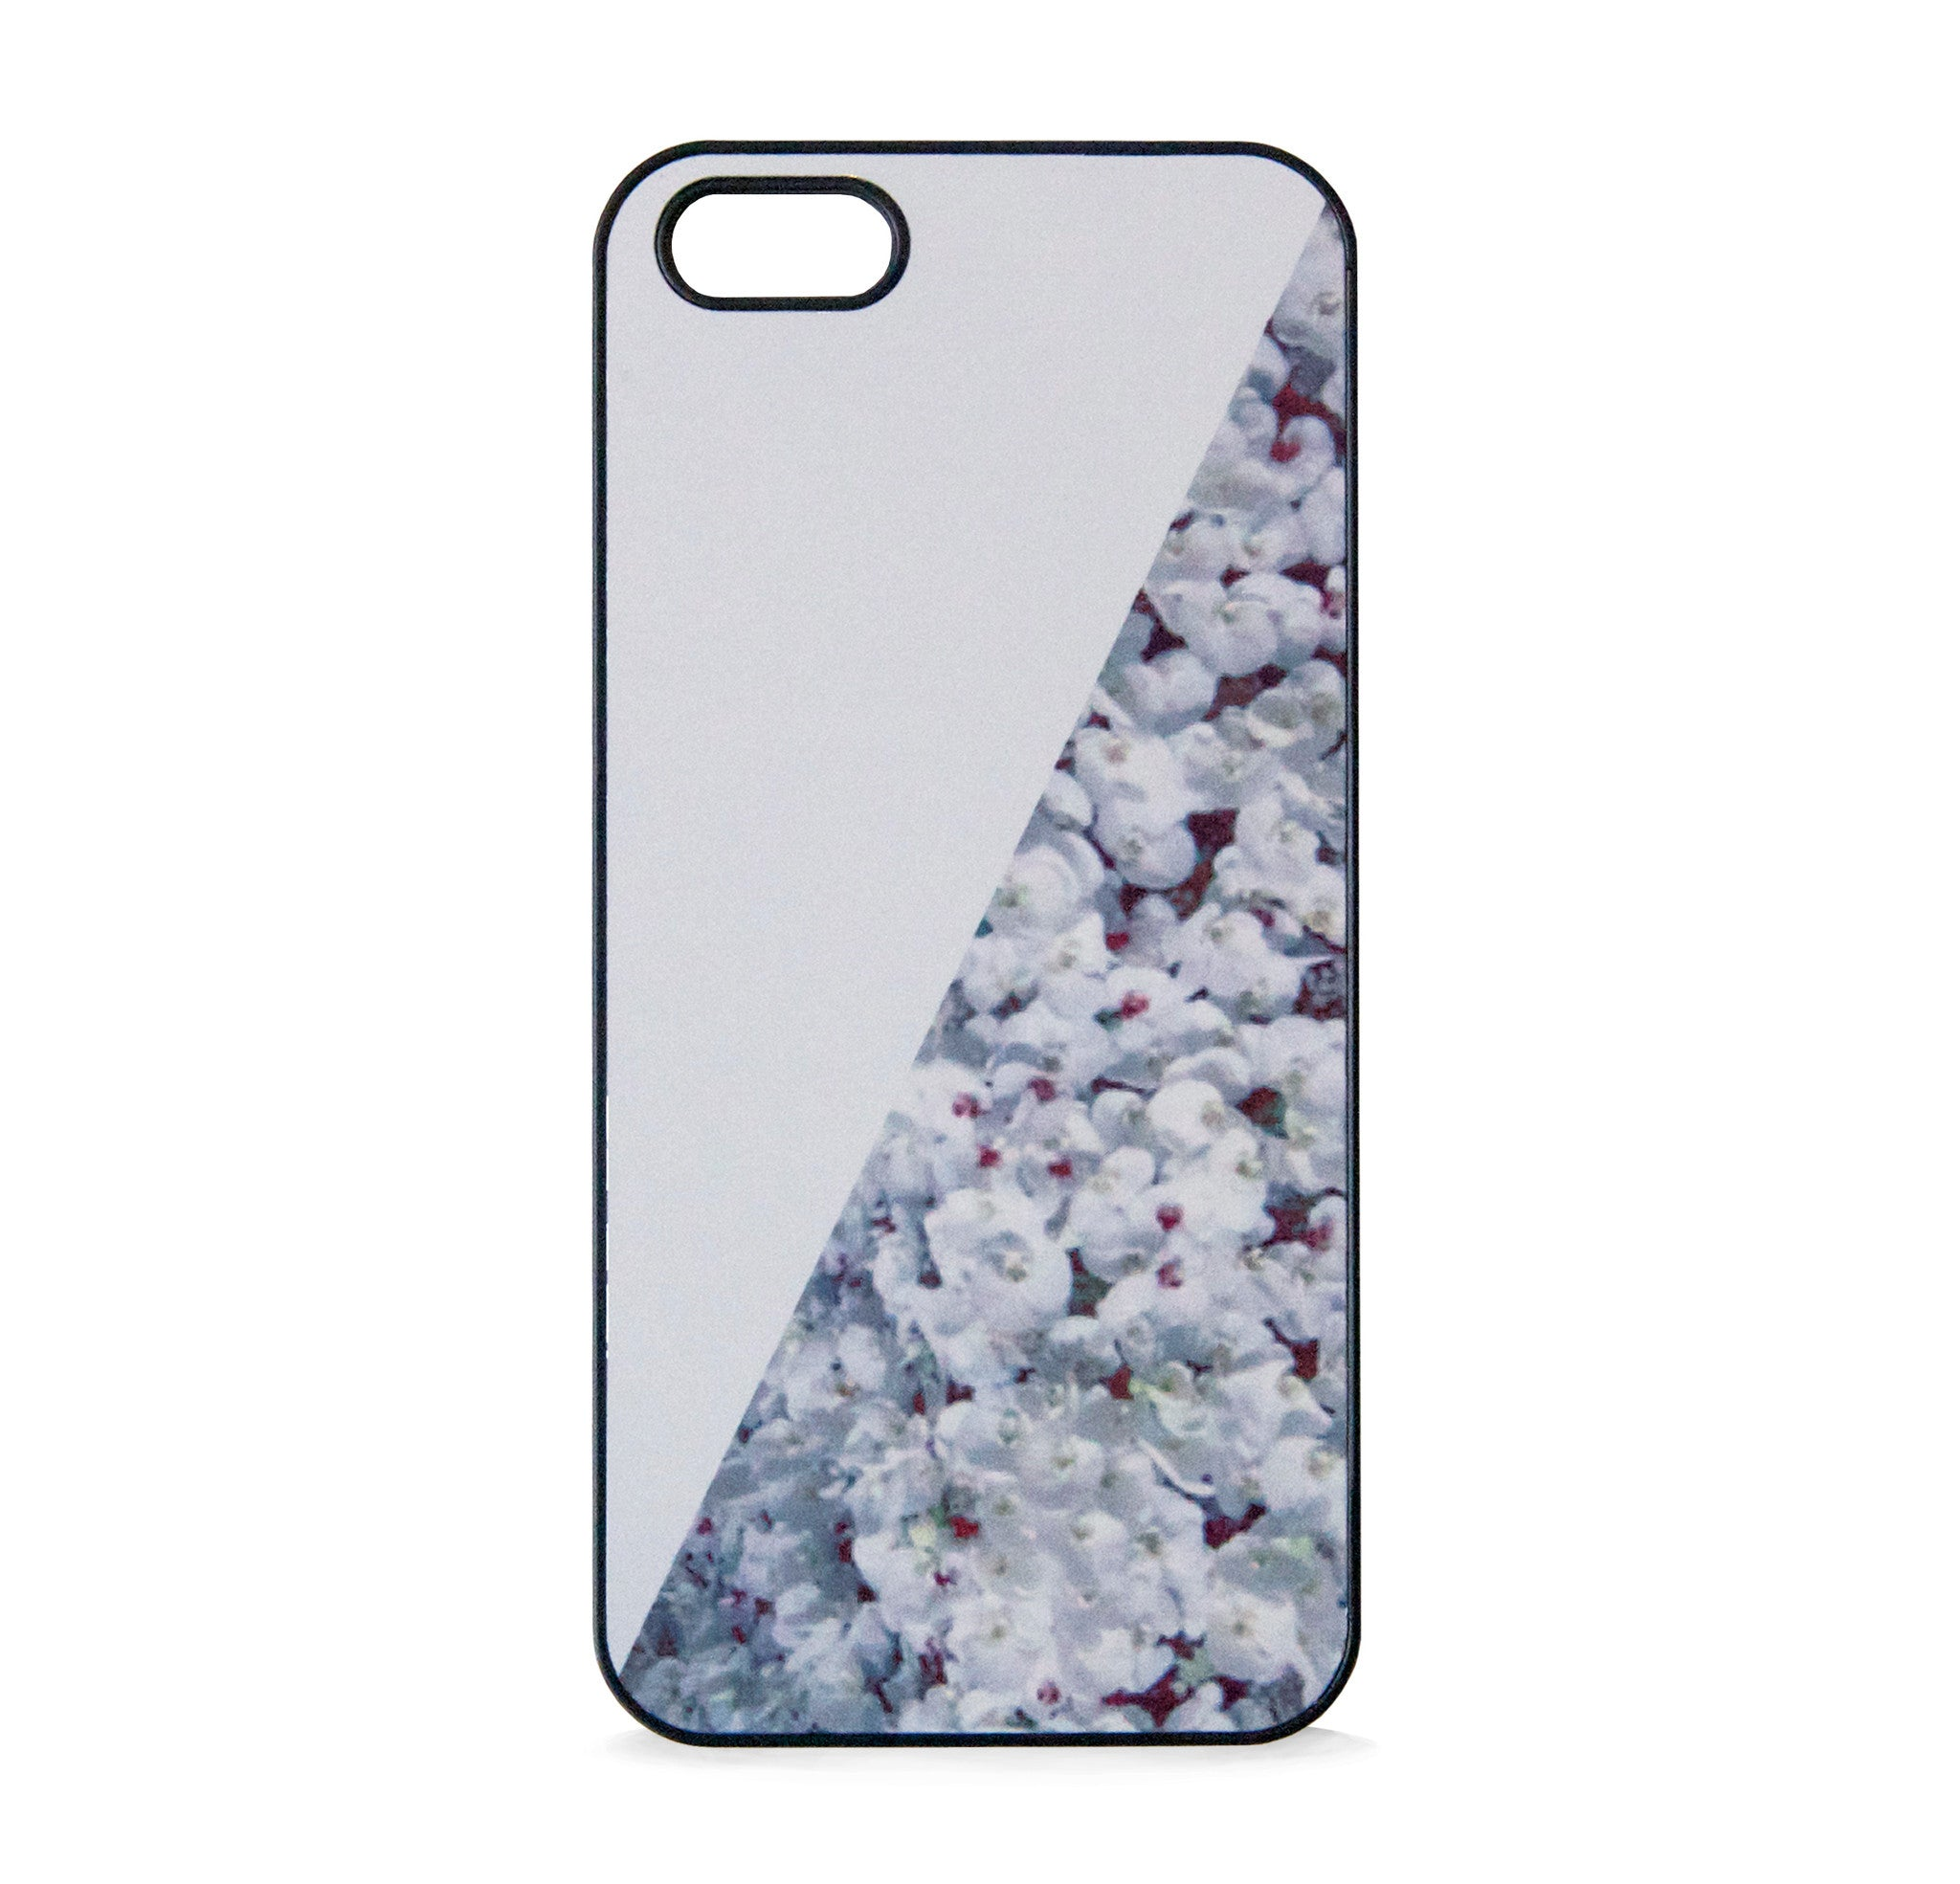 FLORAL PRINT WHITE FOR IPHONE 5/5S, IPHONE SE